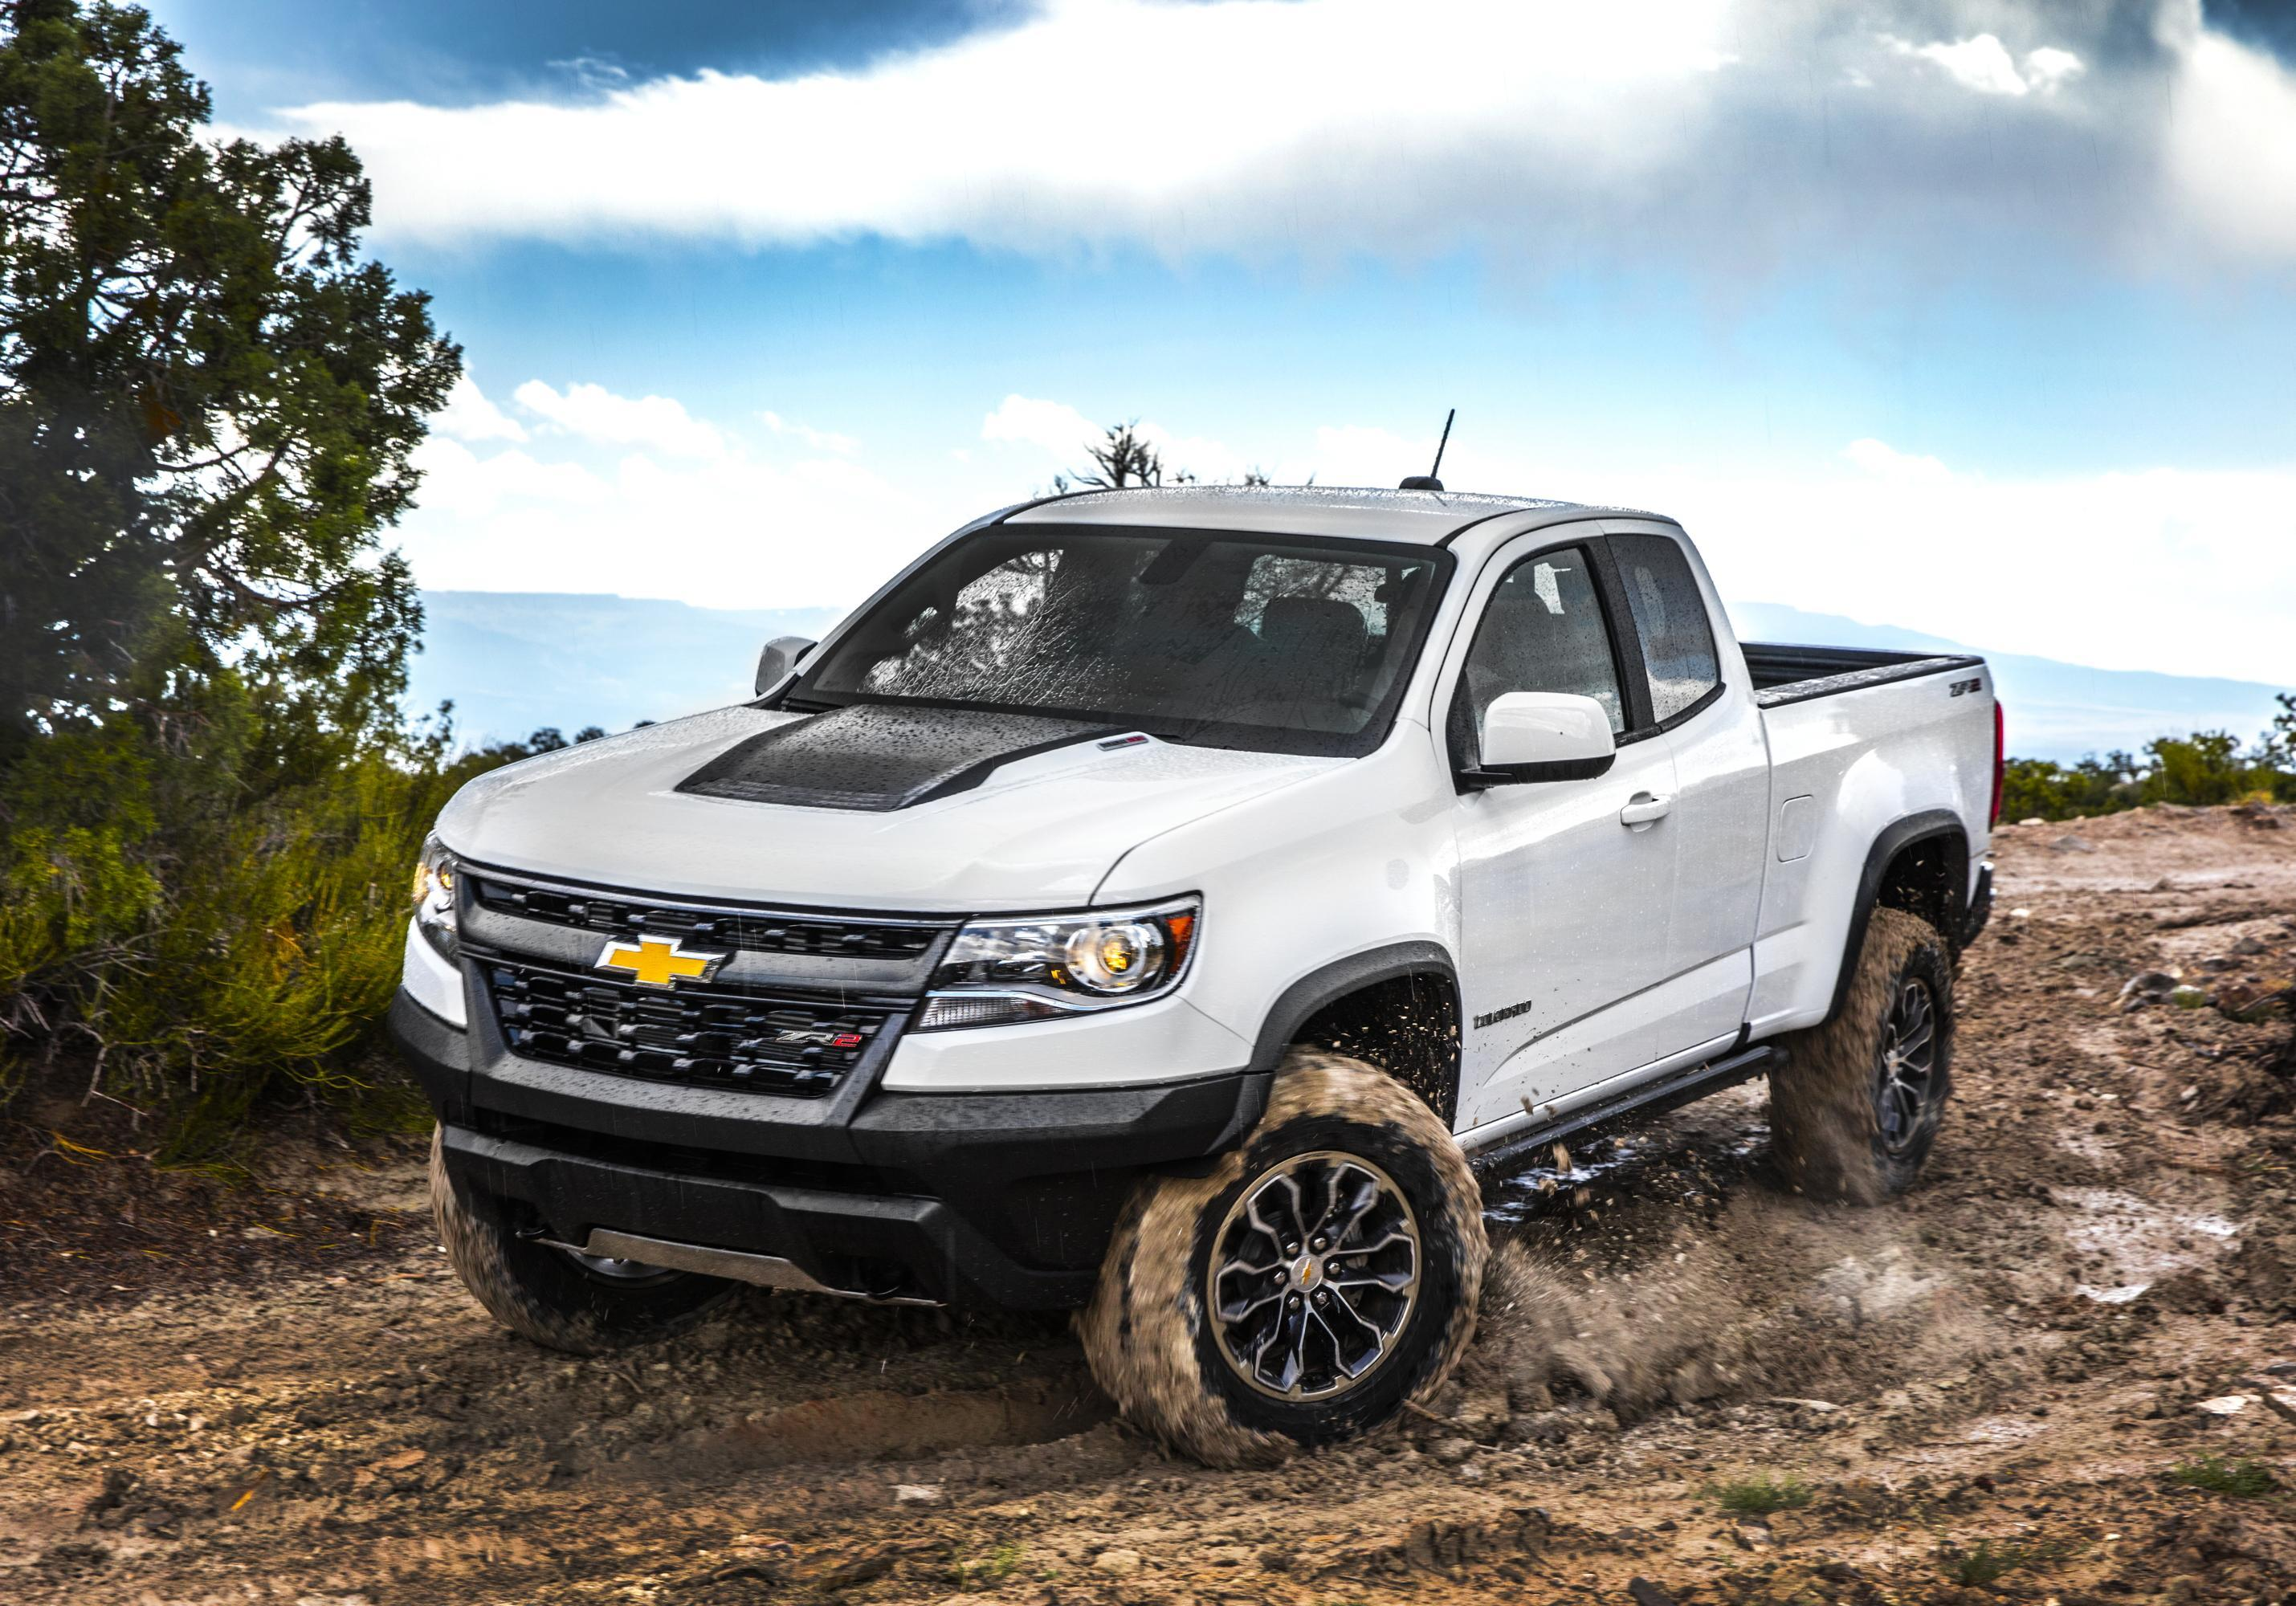 2018 Chevy Colorado at Essigs' Motors